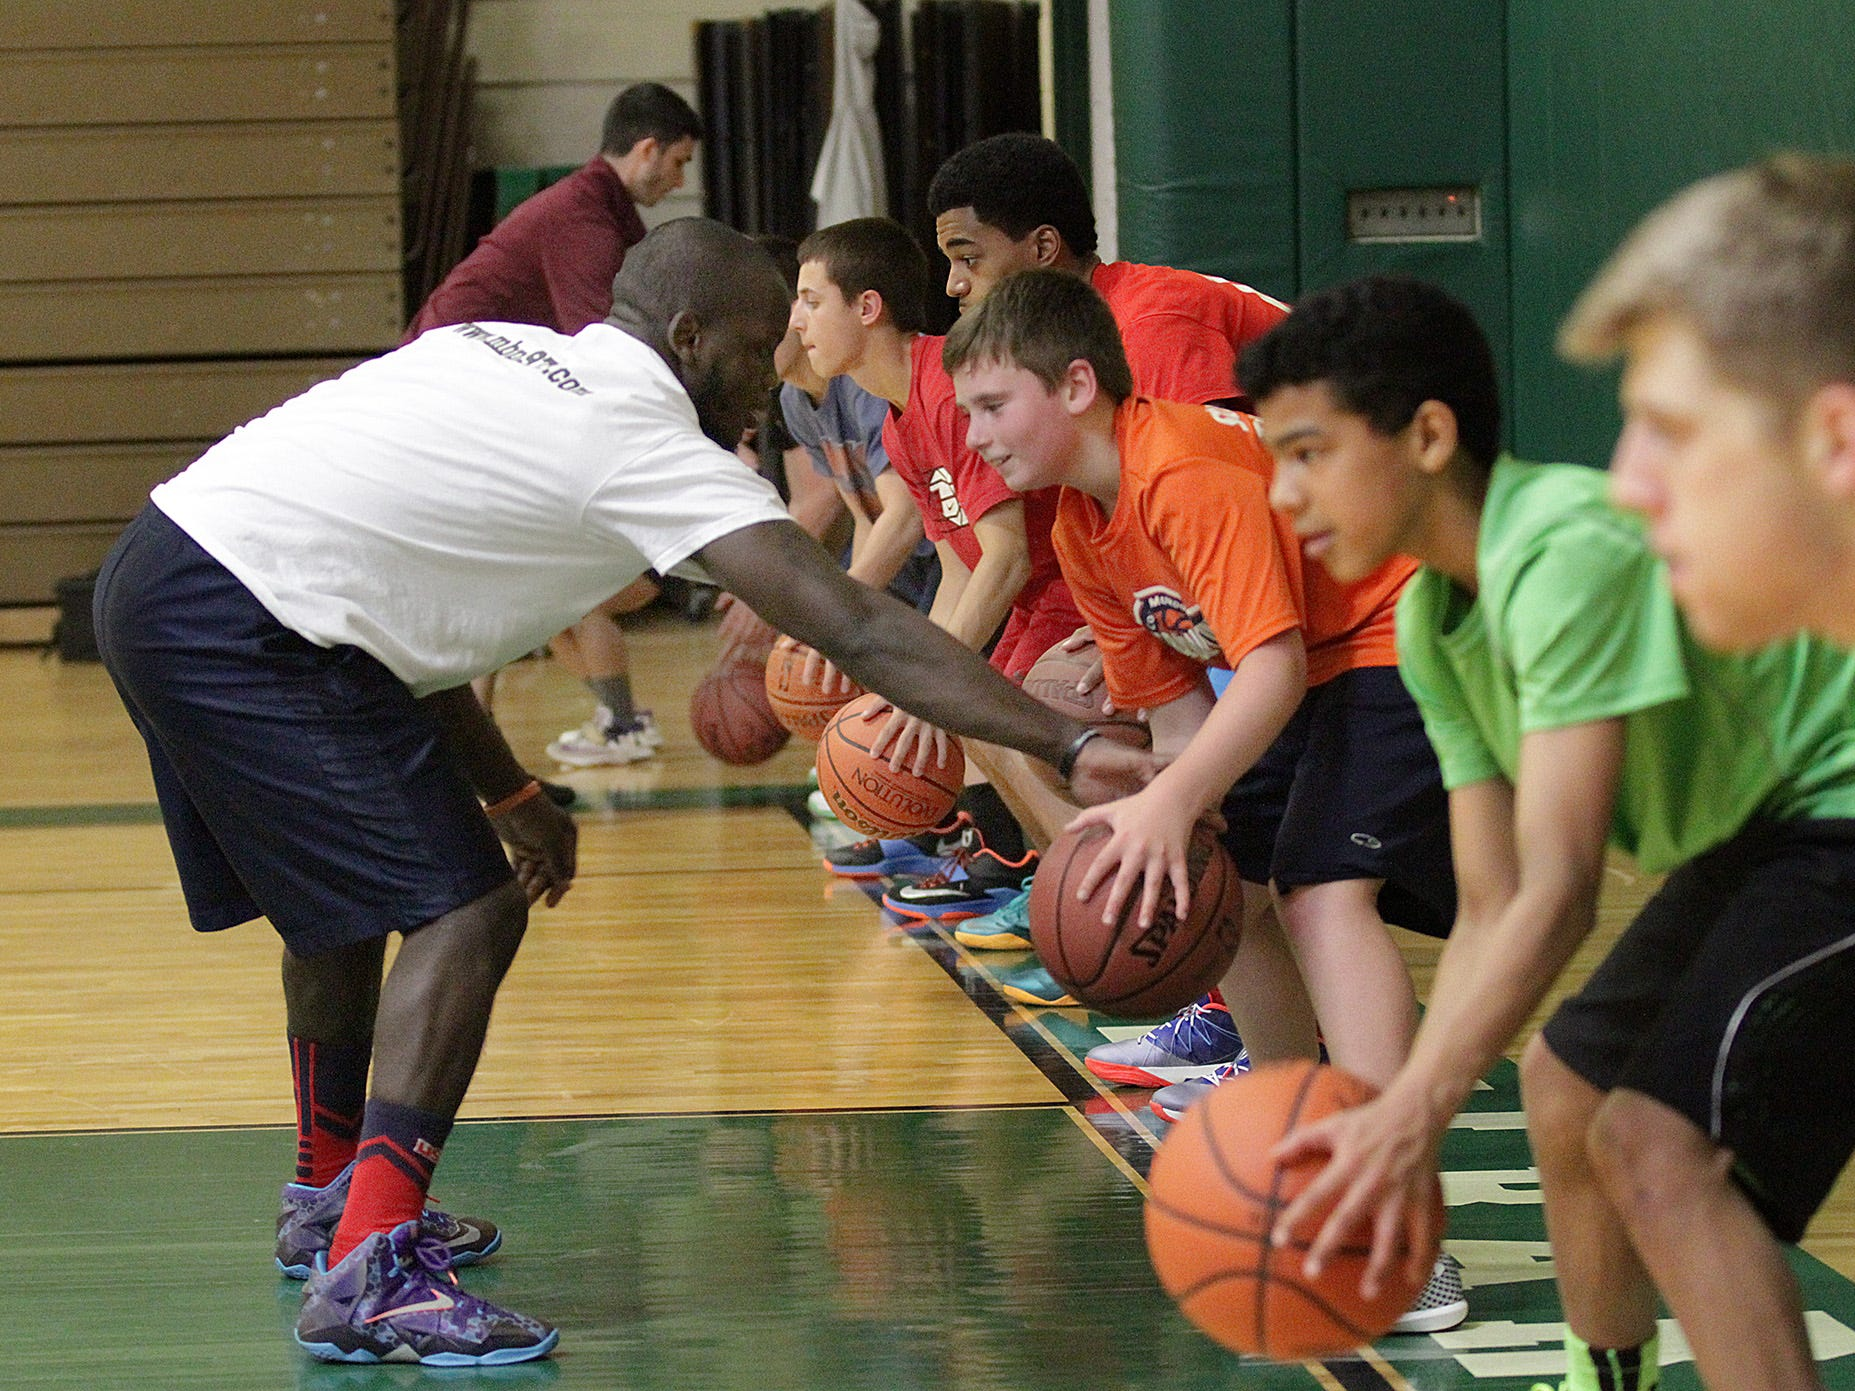 Lloyd Castello, one of the coaches at the Morris Basketball Program clinic, hassles players during a dribbling drill.